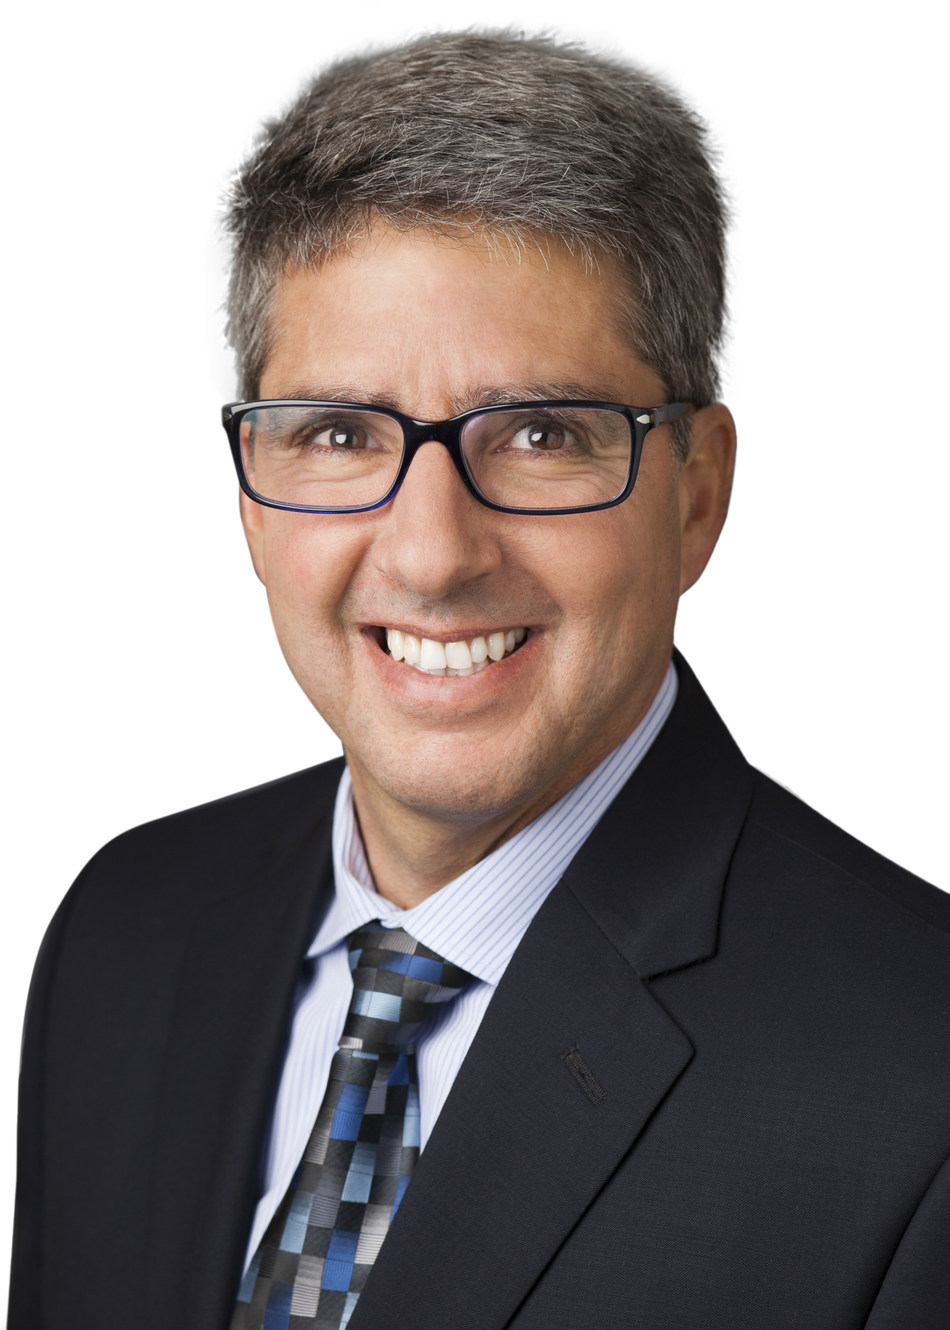 Newly-elected Education Foundation President, Joseph A. Forlenza, CFP, CPA